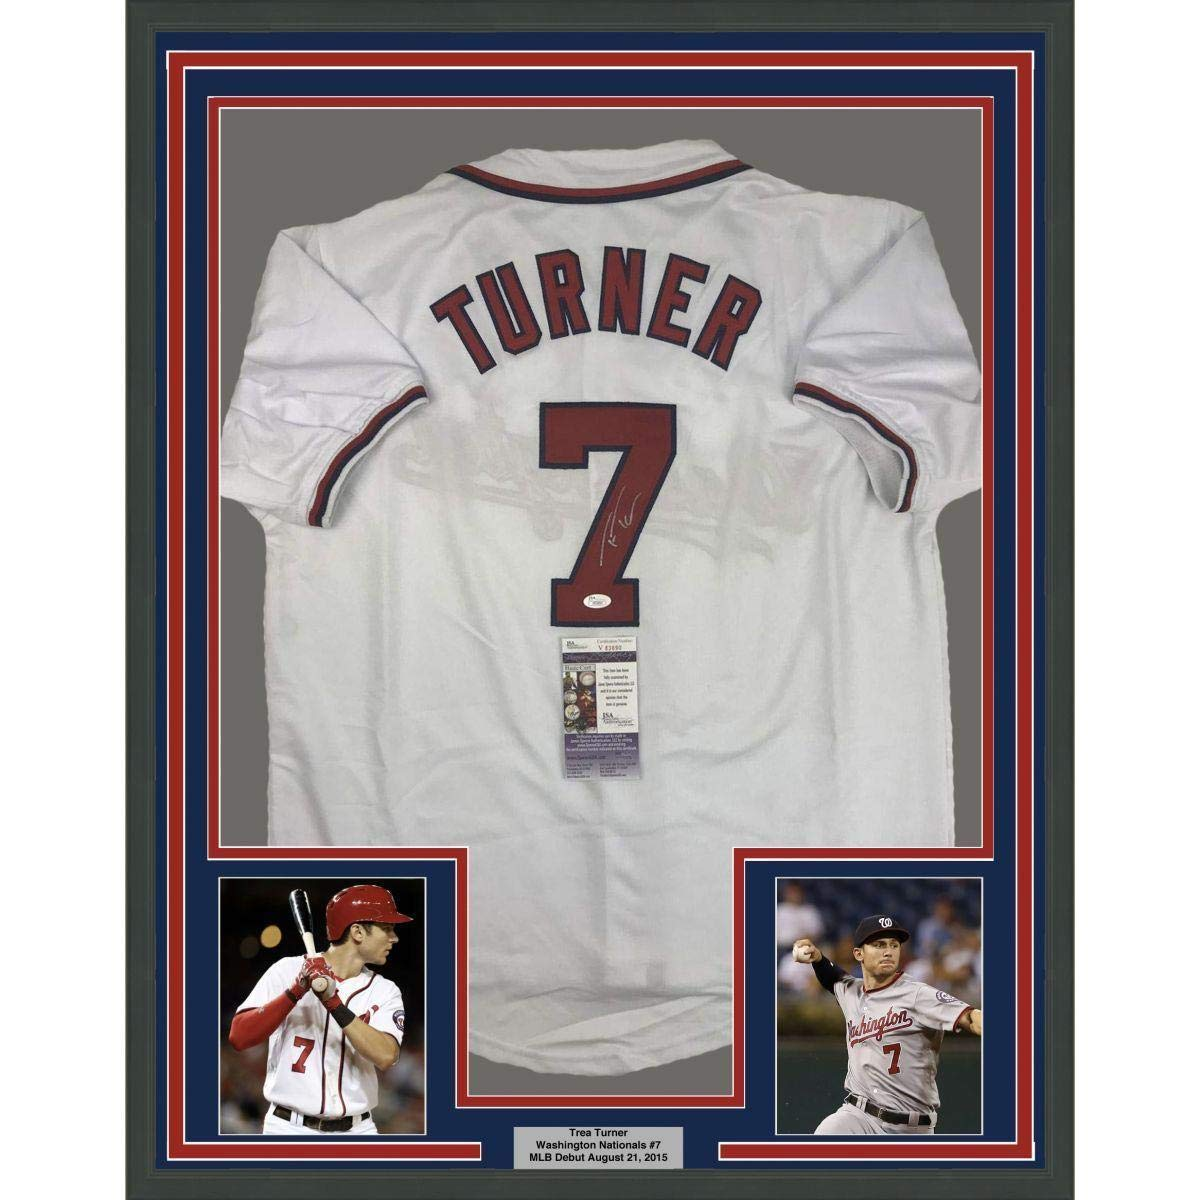 separation shoes 73844 f596e Signed Trea Turner Jersey - FRAMED 33x42 White COA - JSA ...